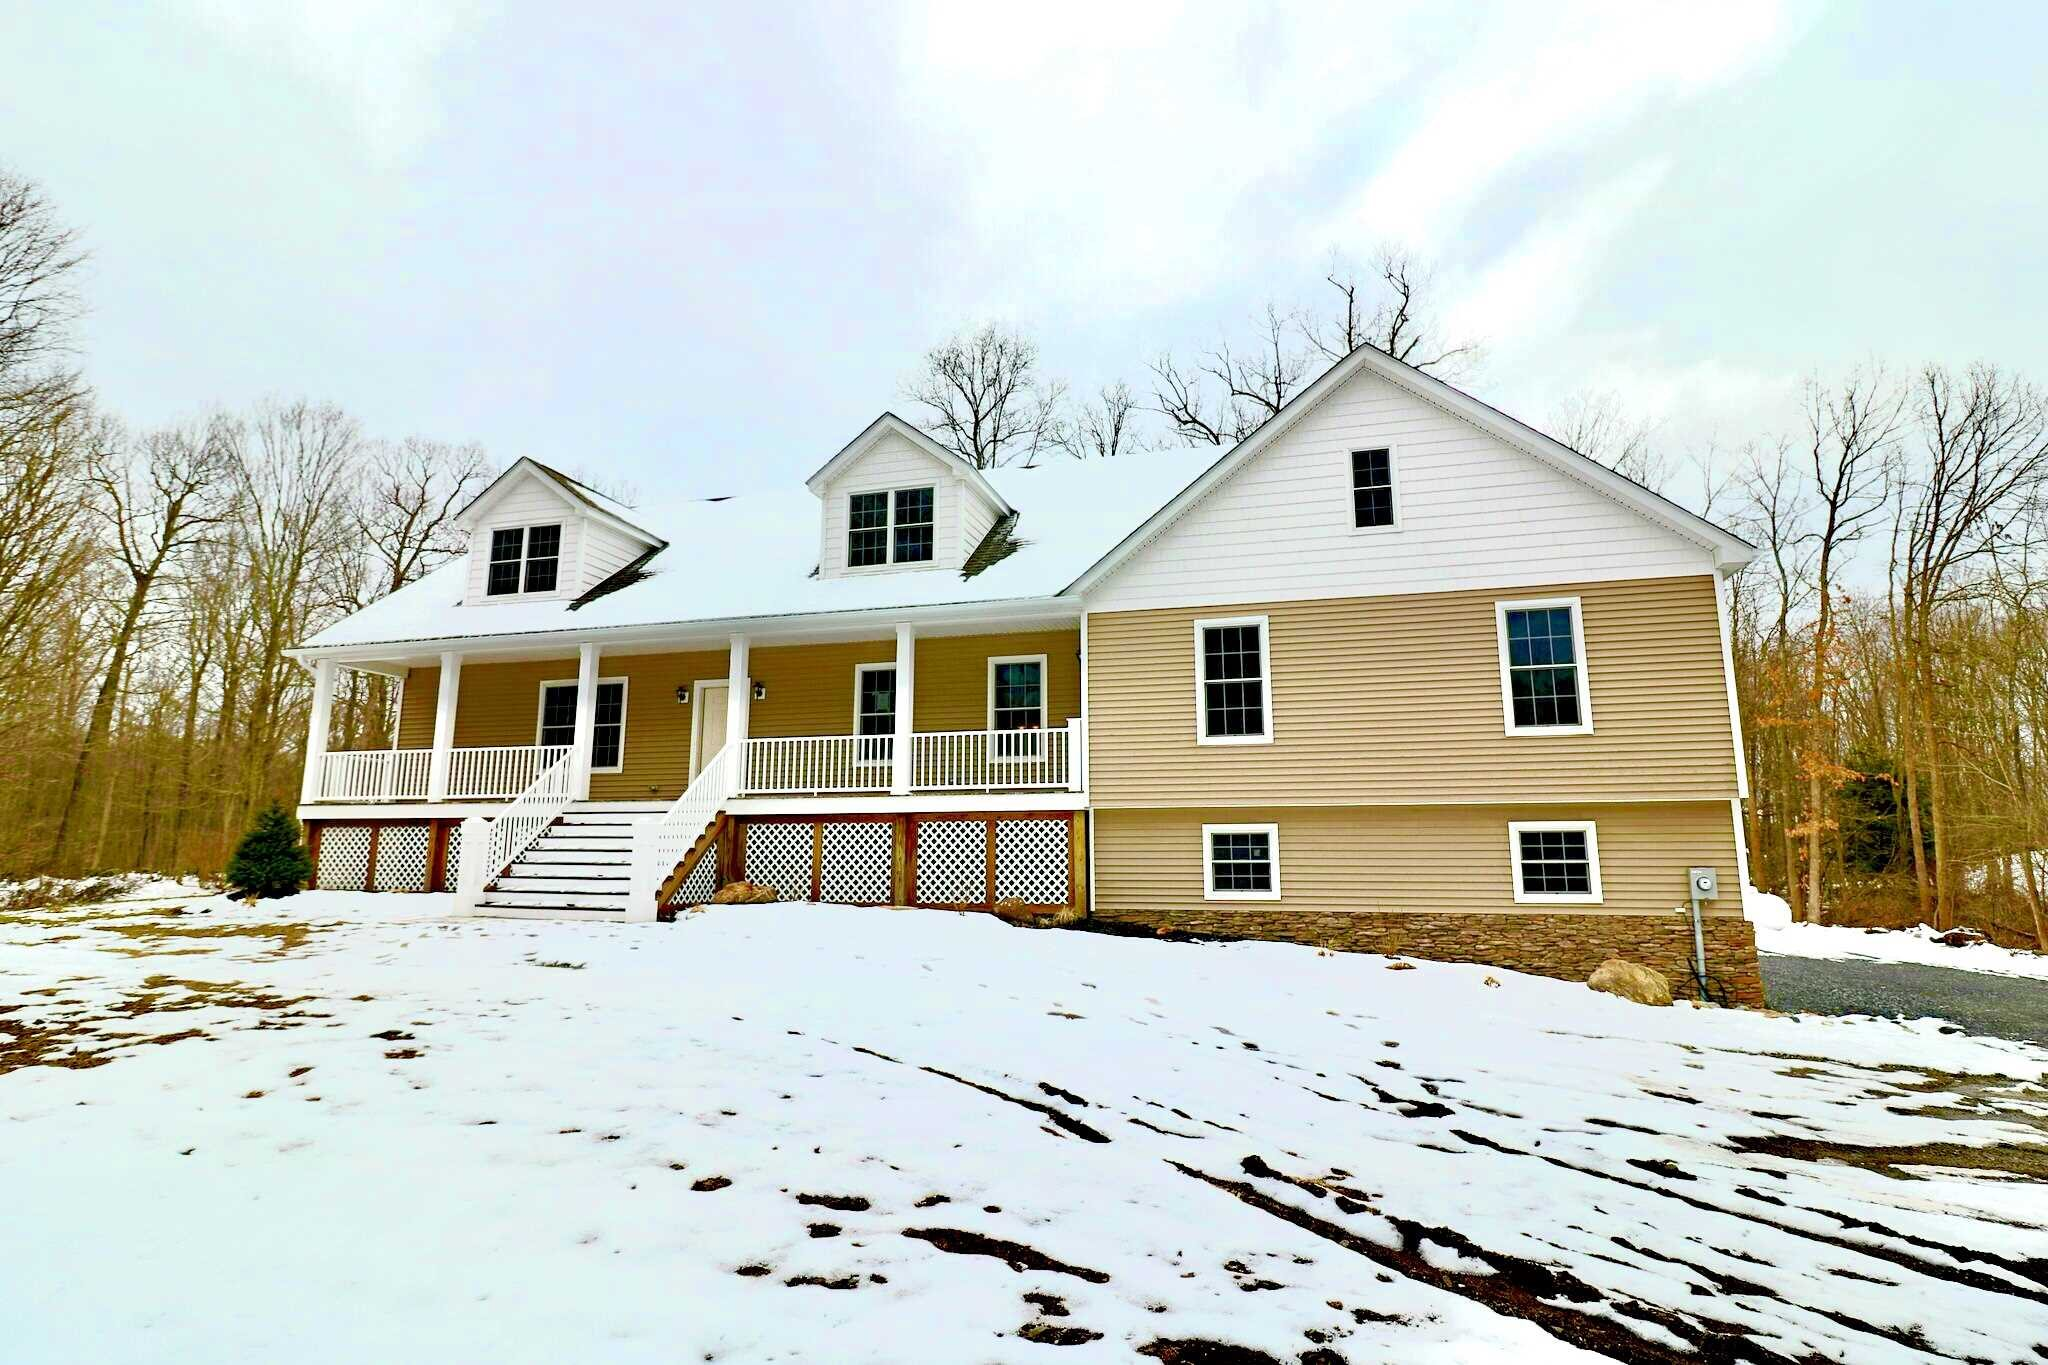 Single Family Home for Sale at 256 LAUER 256 LAUER Poughkeepsie, New York 12603 United States